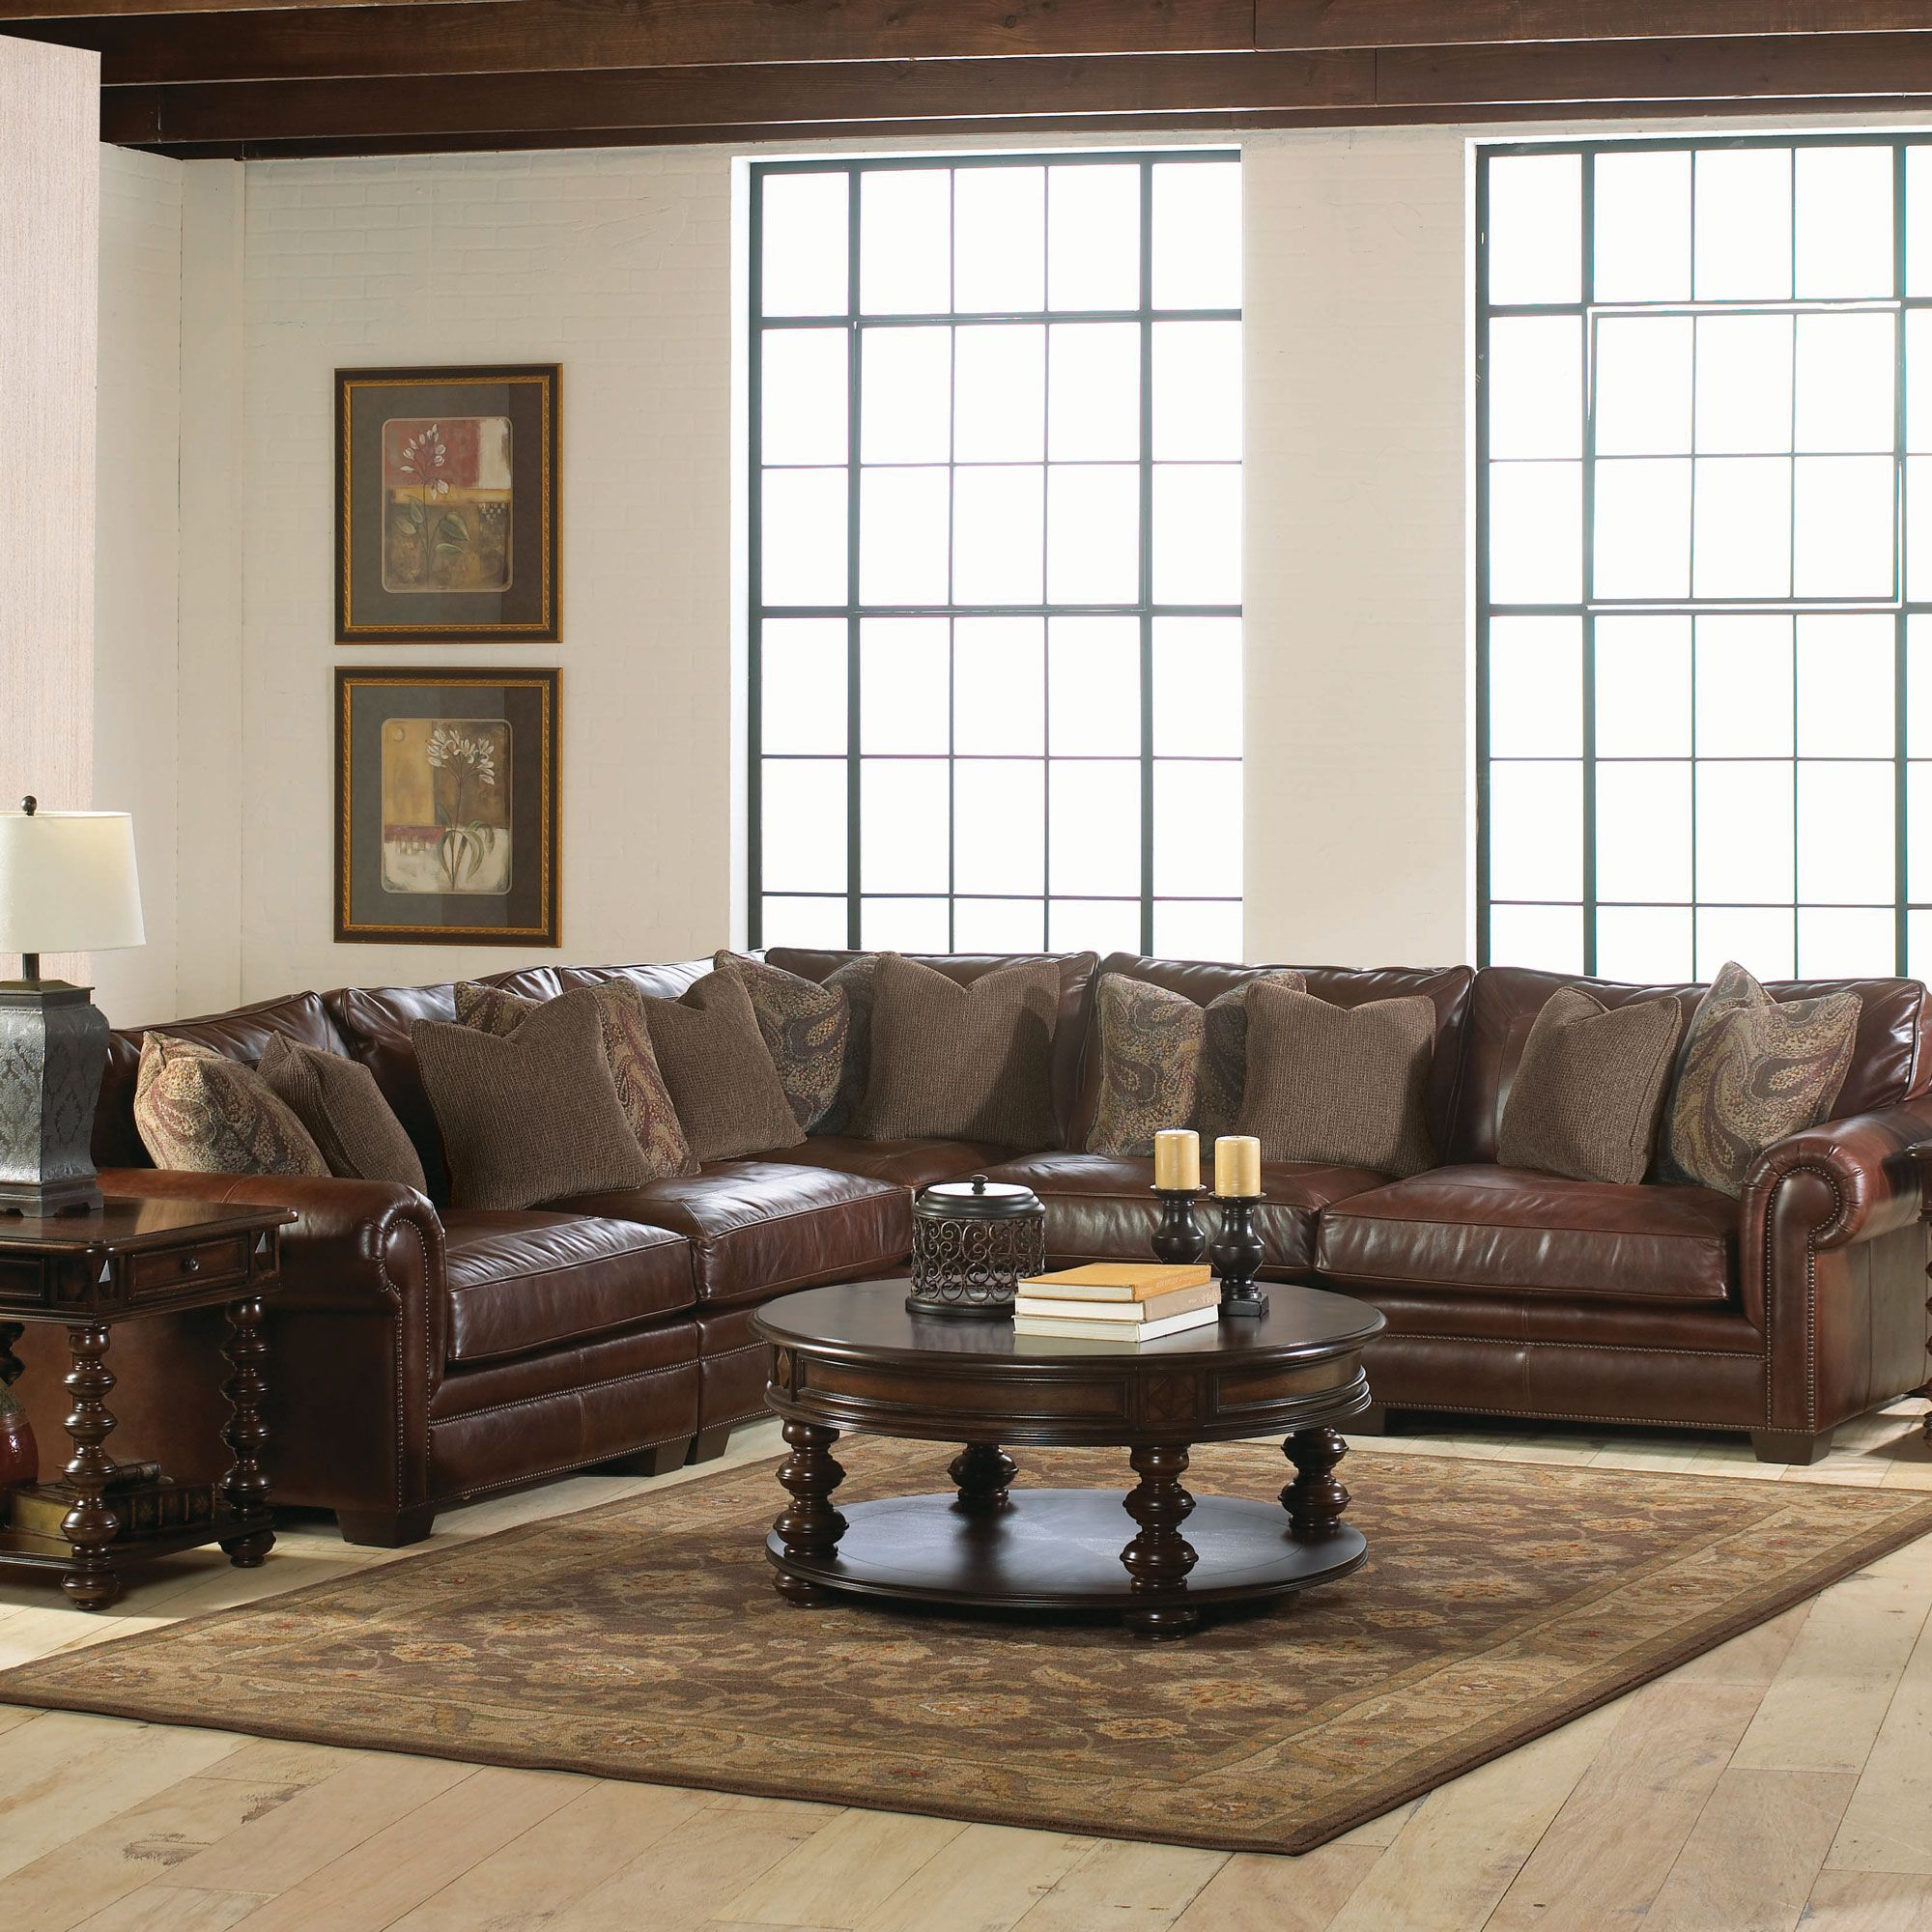 Living Room Sectional: Grandview By Bernhardt At Kensington Furniture. Such  A Cozy Living Room